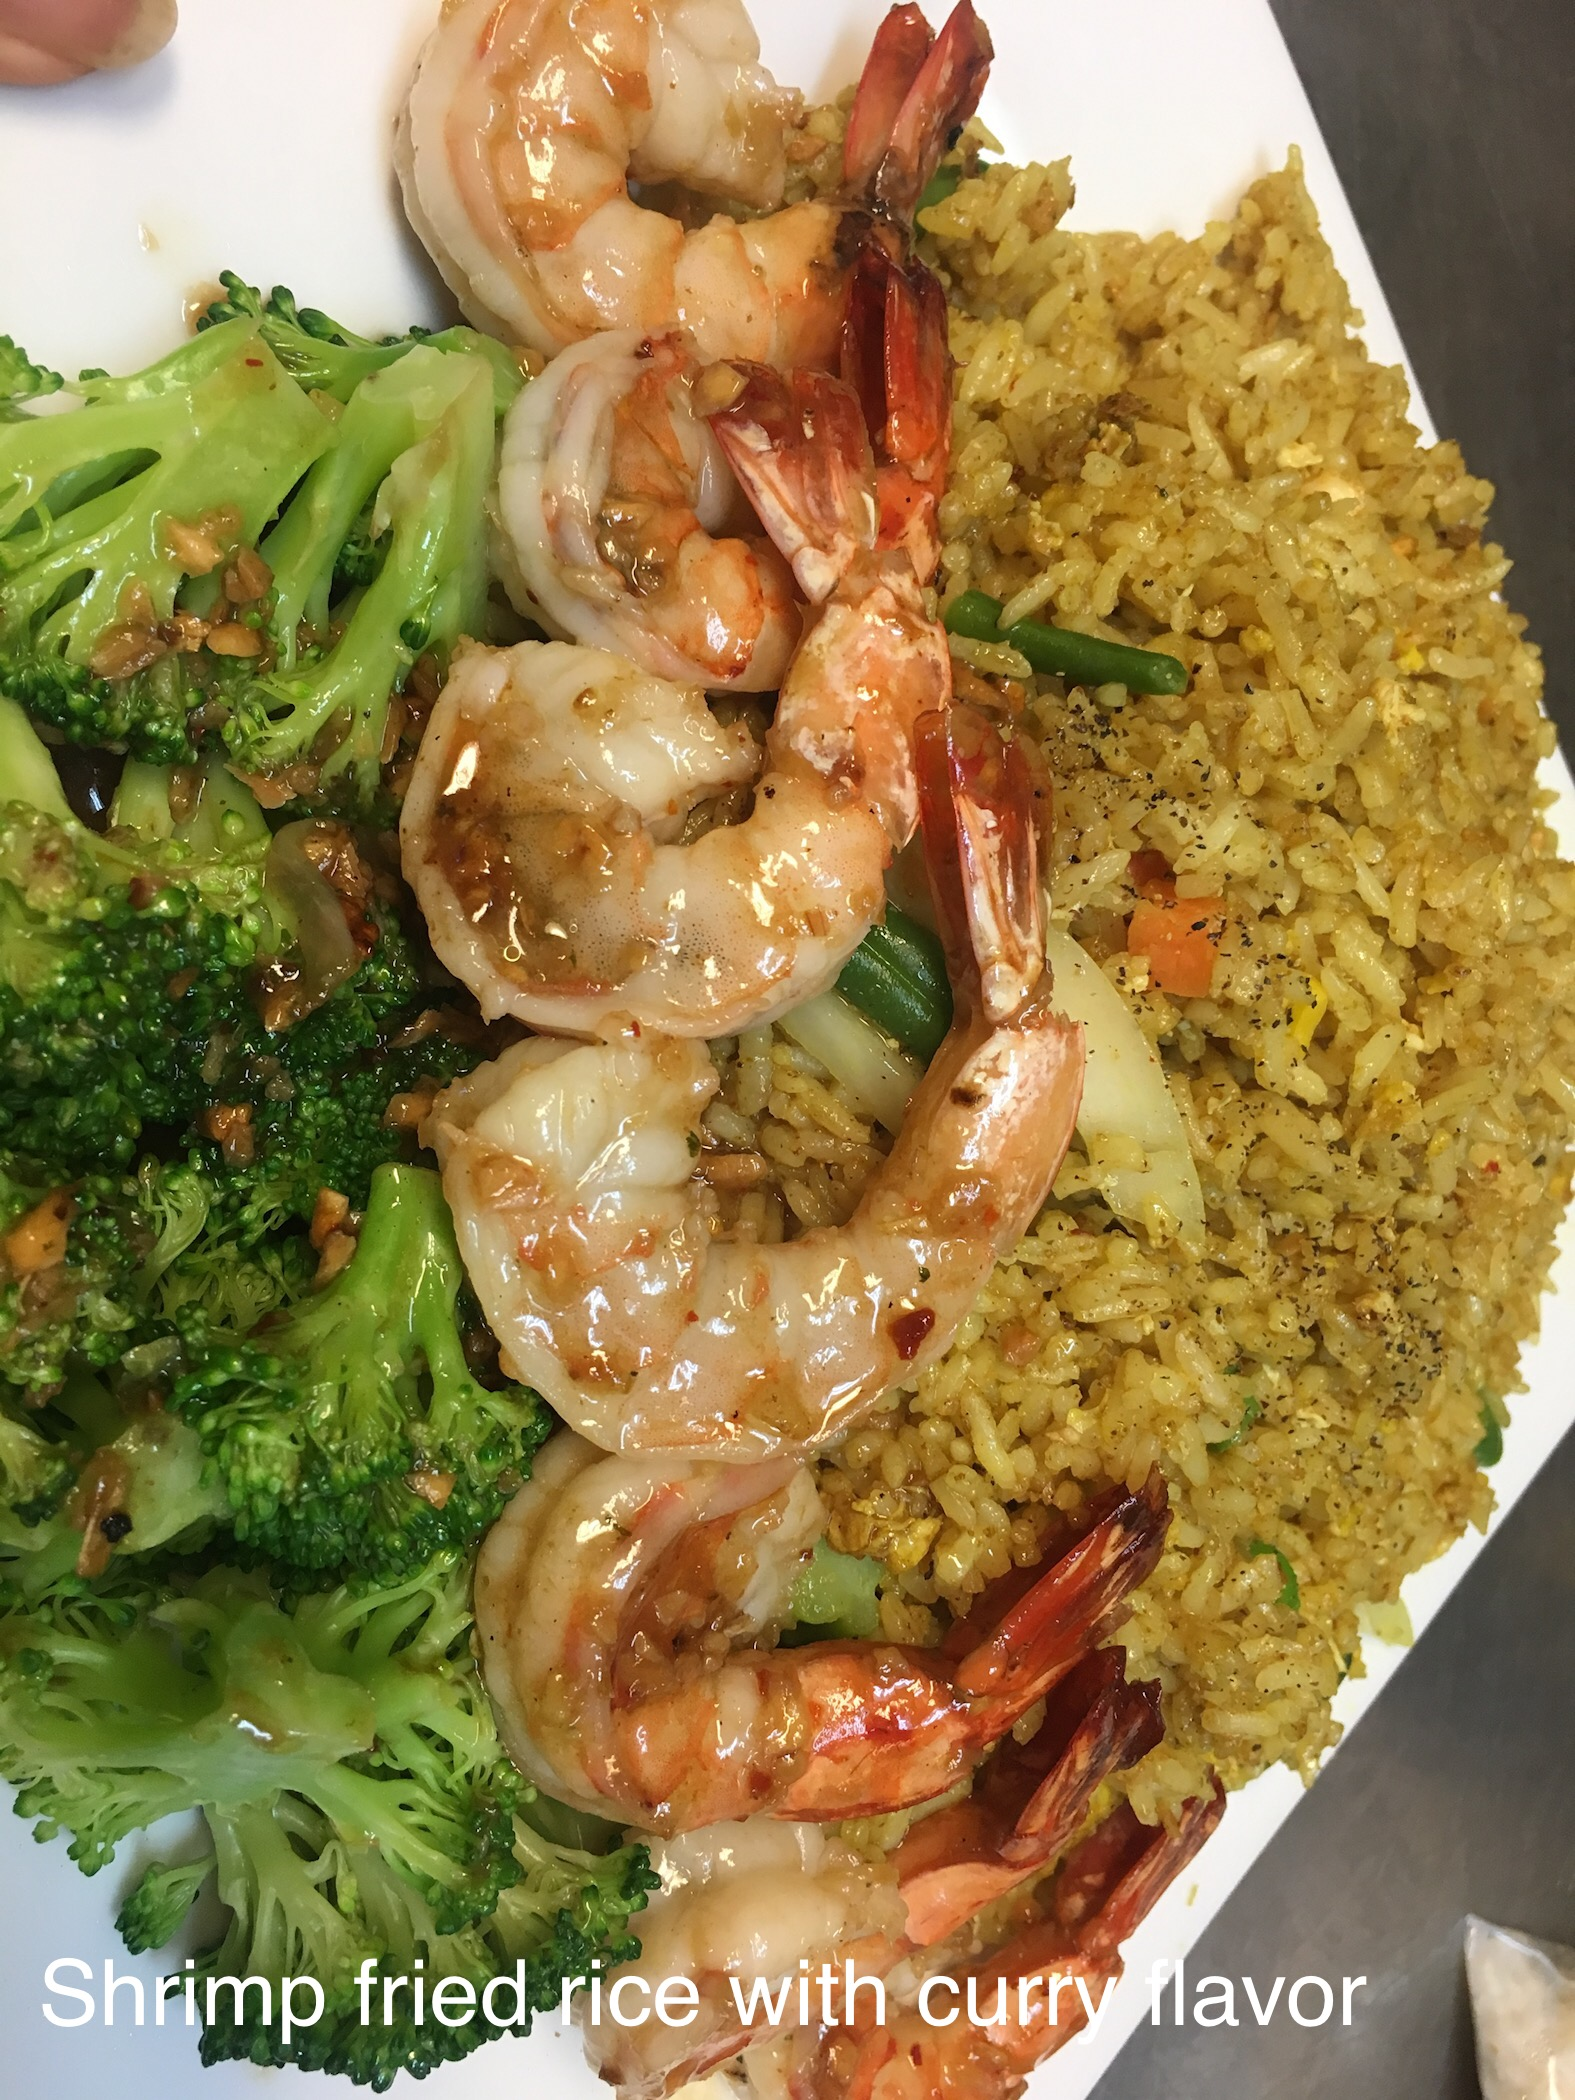 27. SHRIMP FRIED RICE